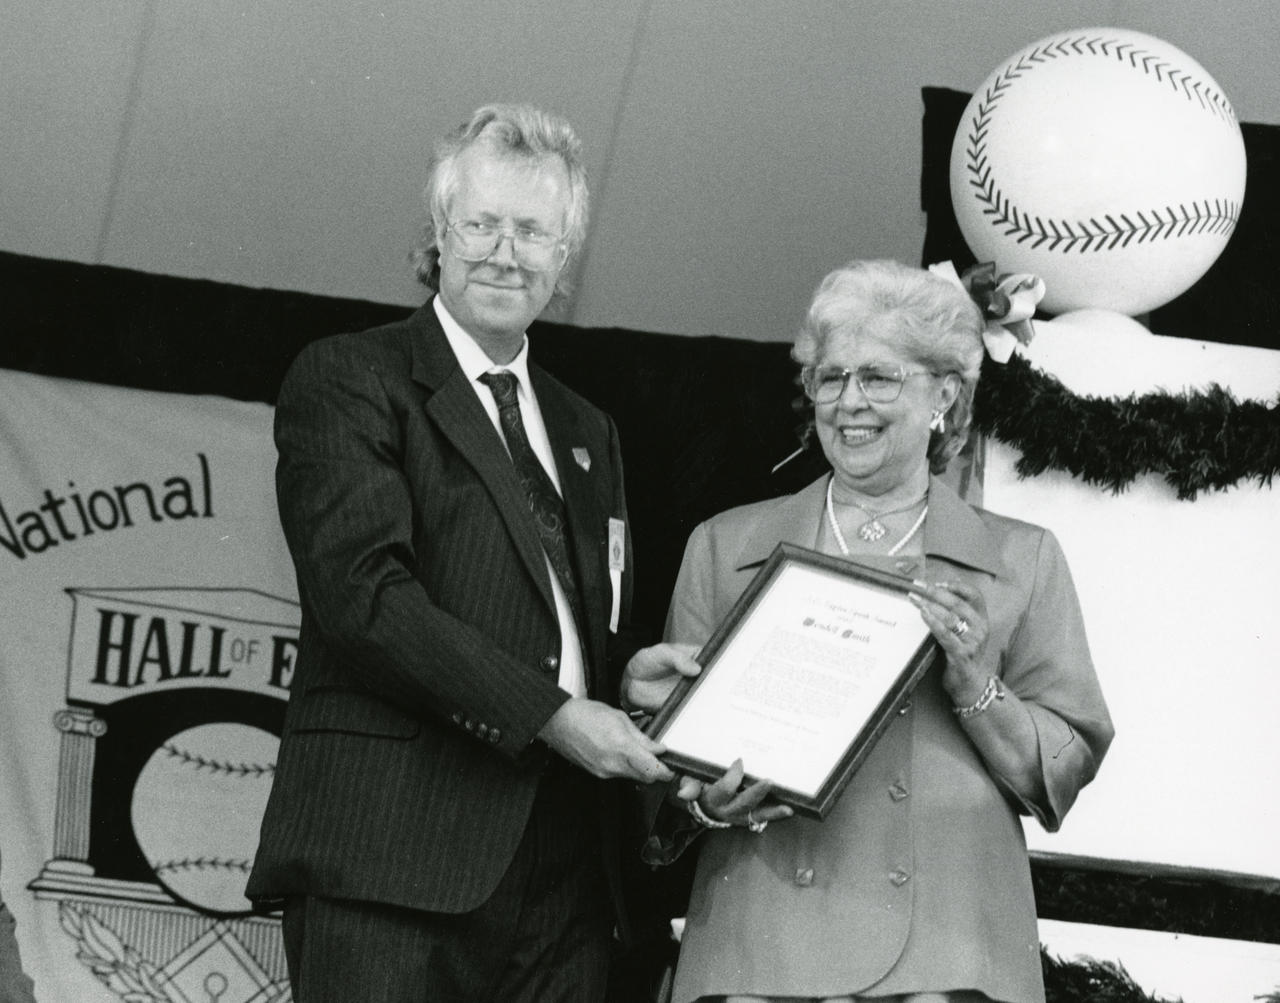 J.G. Taylor Spink Award Presentation to Wendell Smith, received by Wyonella Smith (Wendell Smith's widow) at the 1994 induction ceremony